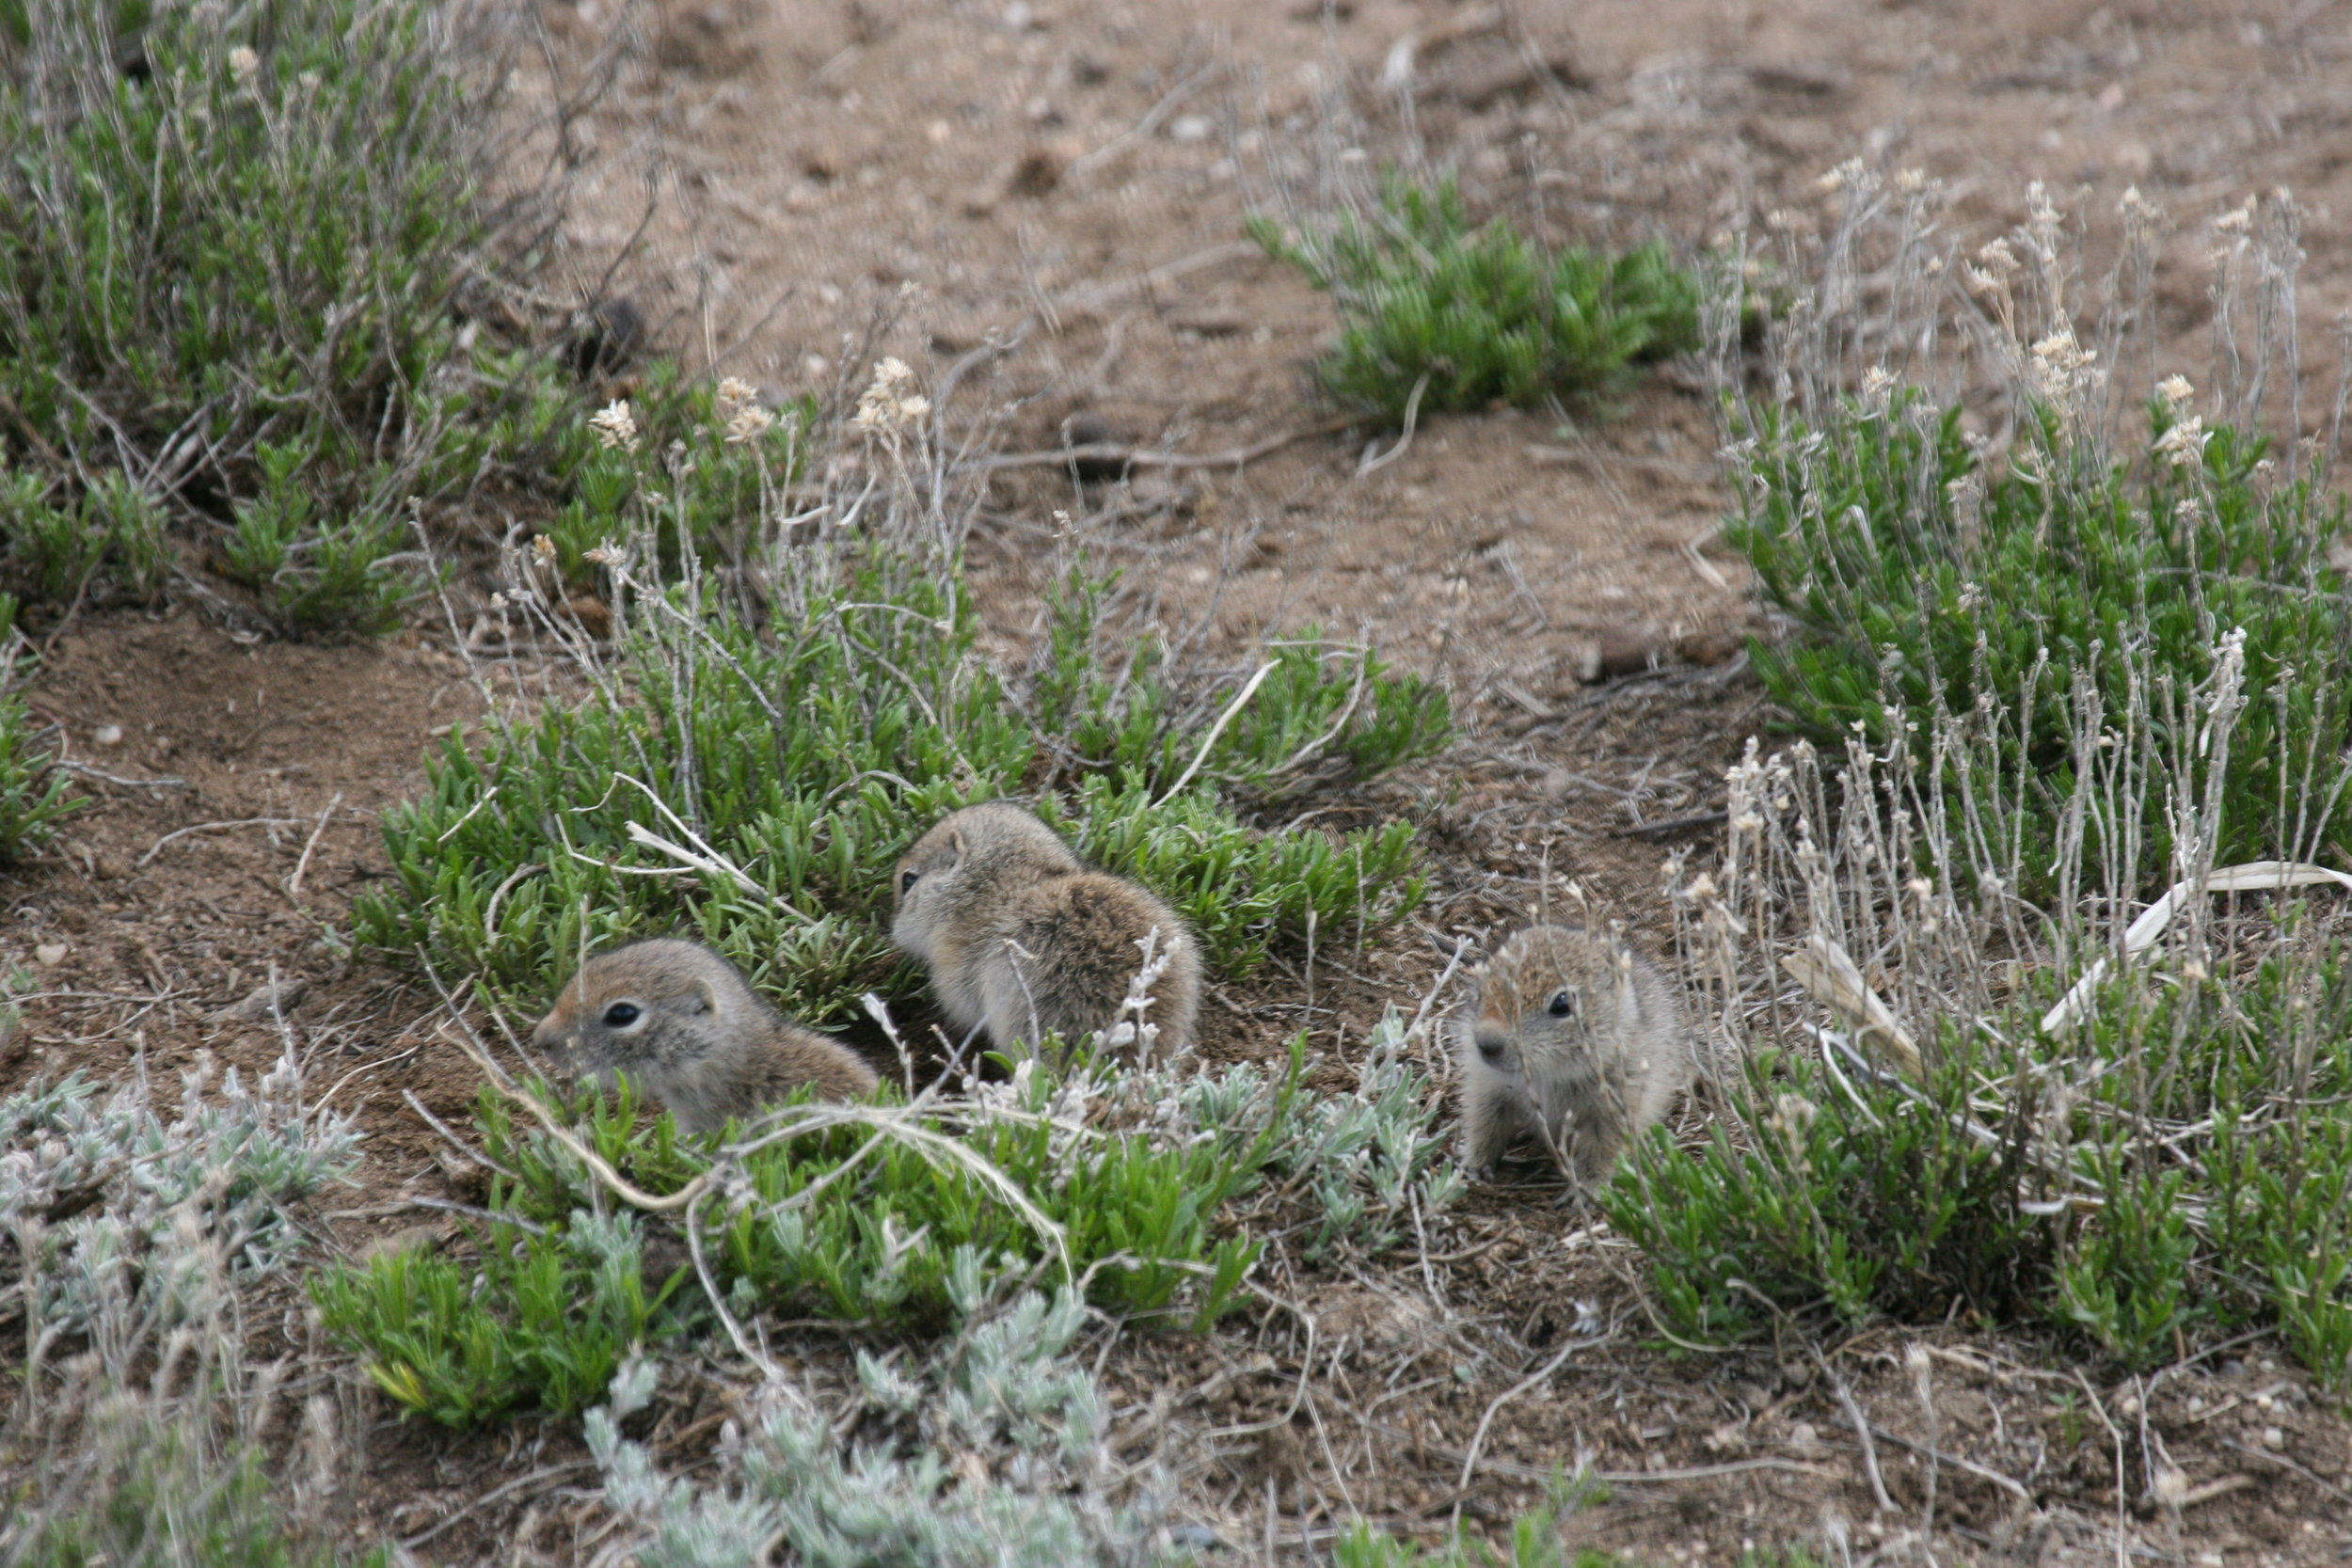 Wyoming ground squirrel juveniles look nearly identical to white-tailed prairie dog juveniles.  ©John Hoogland 2011